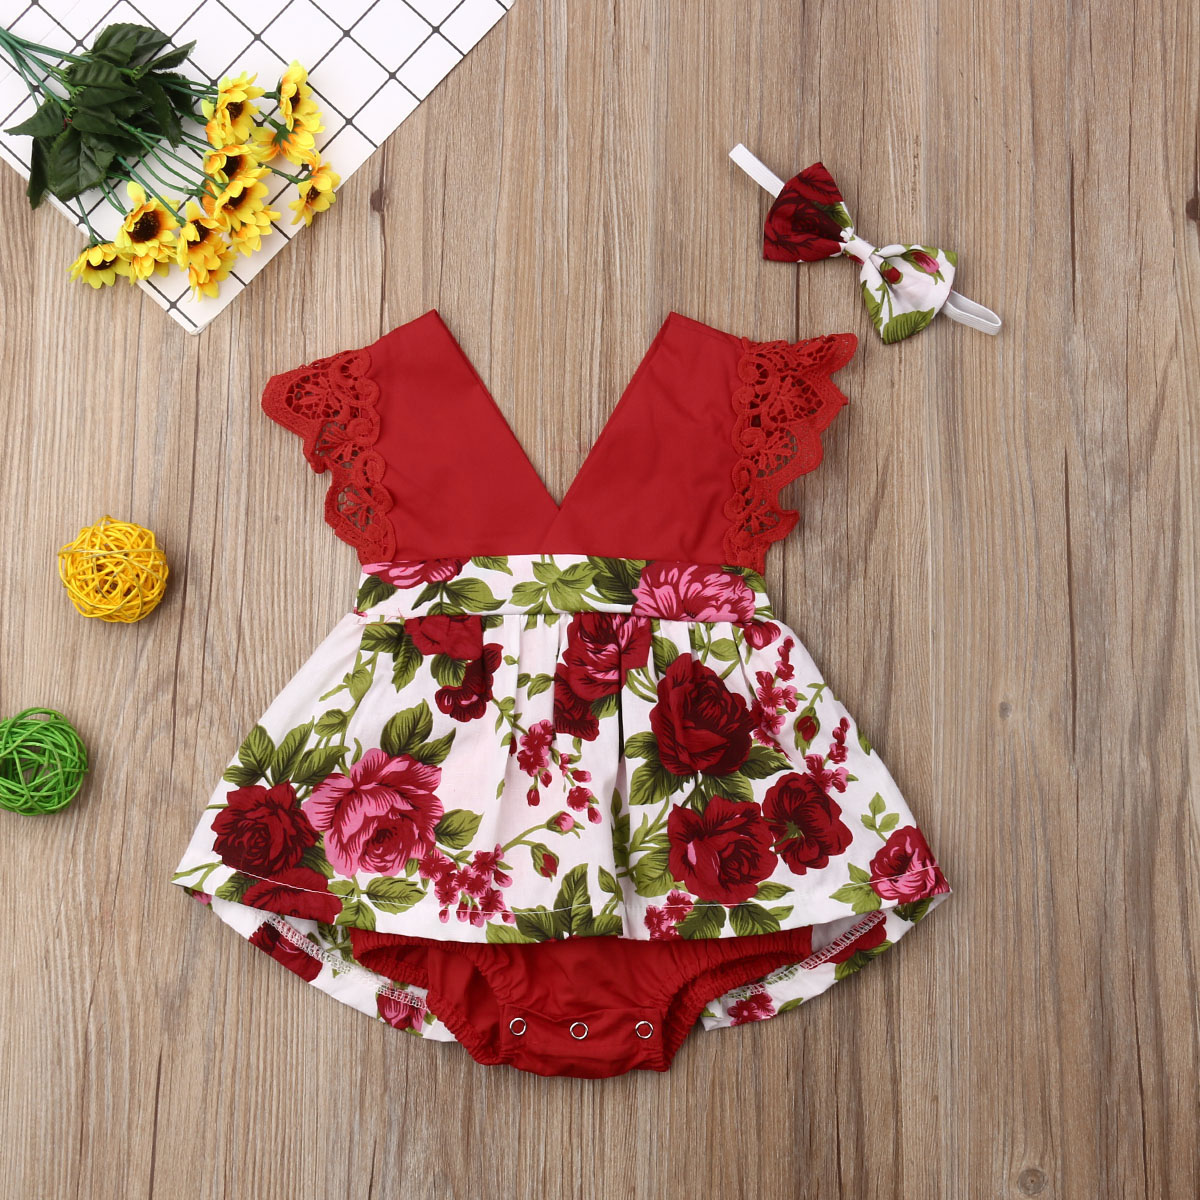 Emmababy Newest Newborn Baby Girl Clothes Lace Fly Sleeve Bodysuit Flower Print Skirt Jumpsuit+Headband 2Pcs Outfits Set